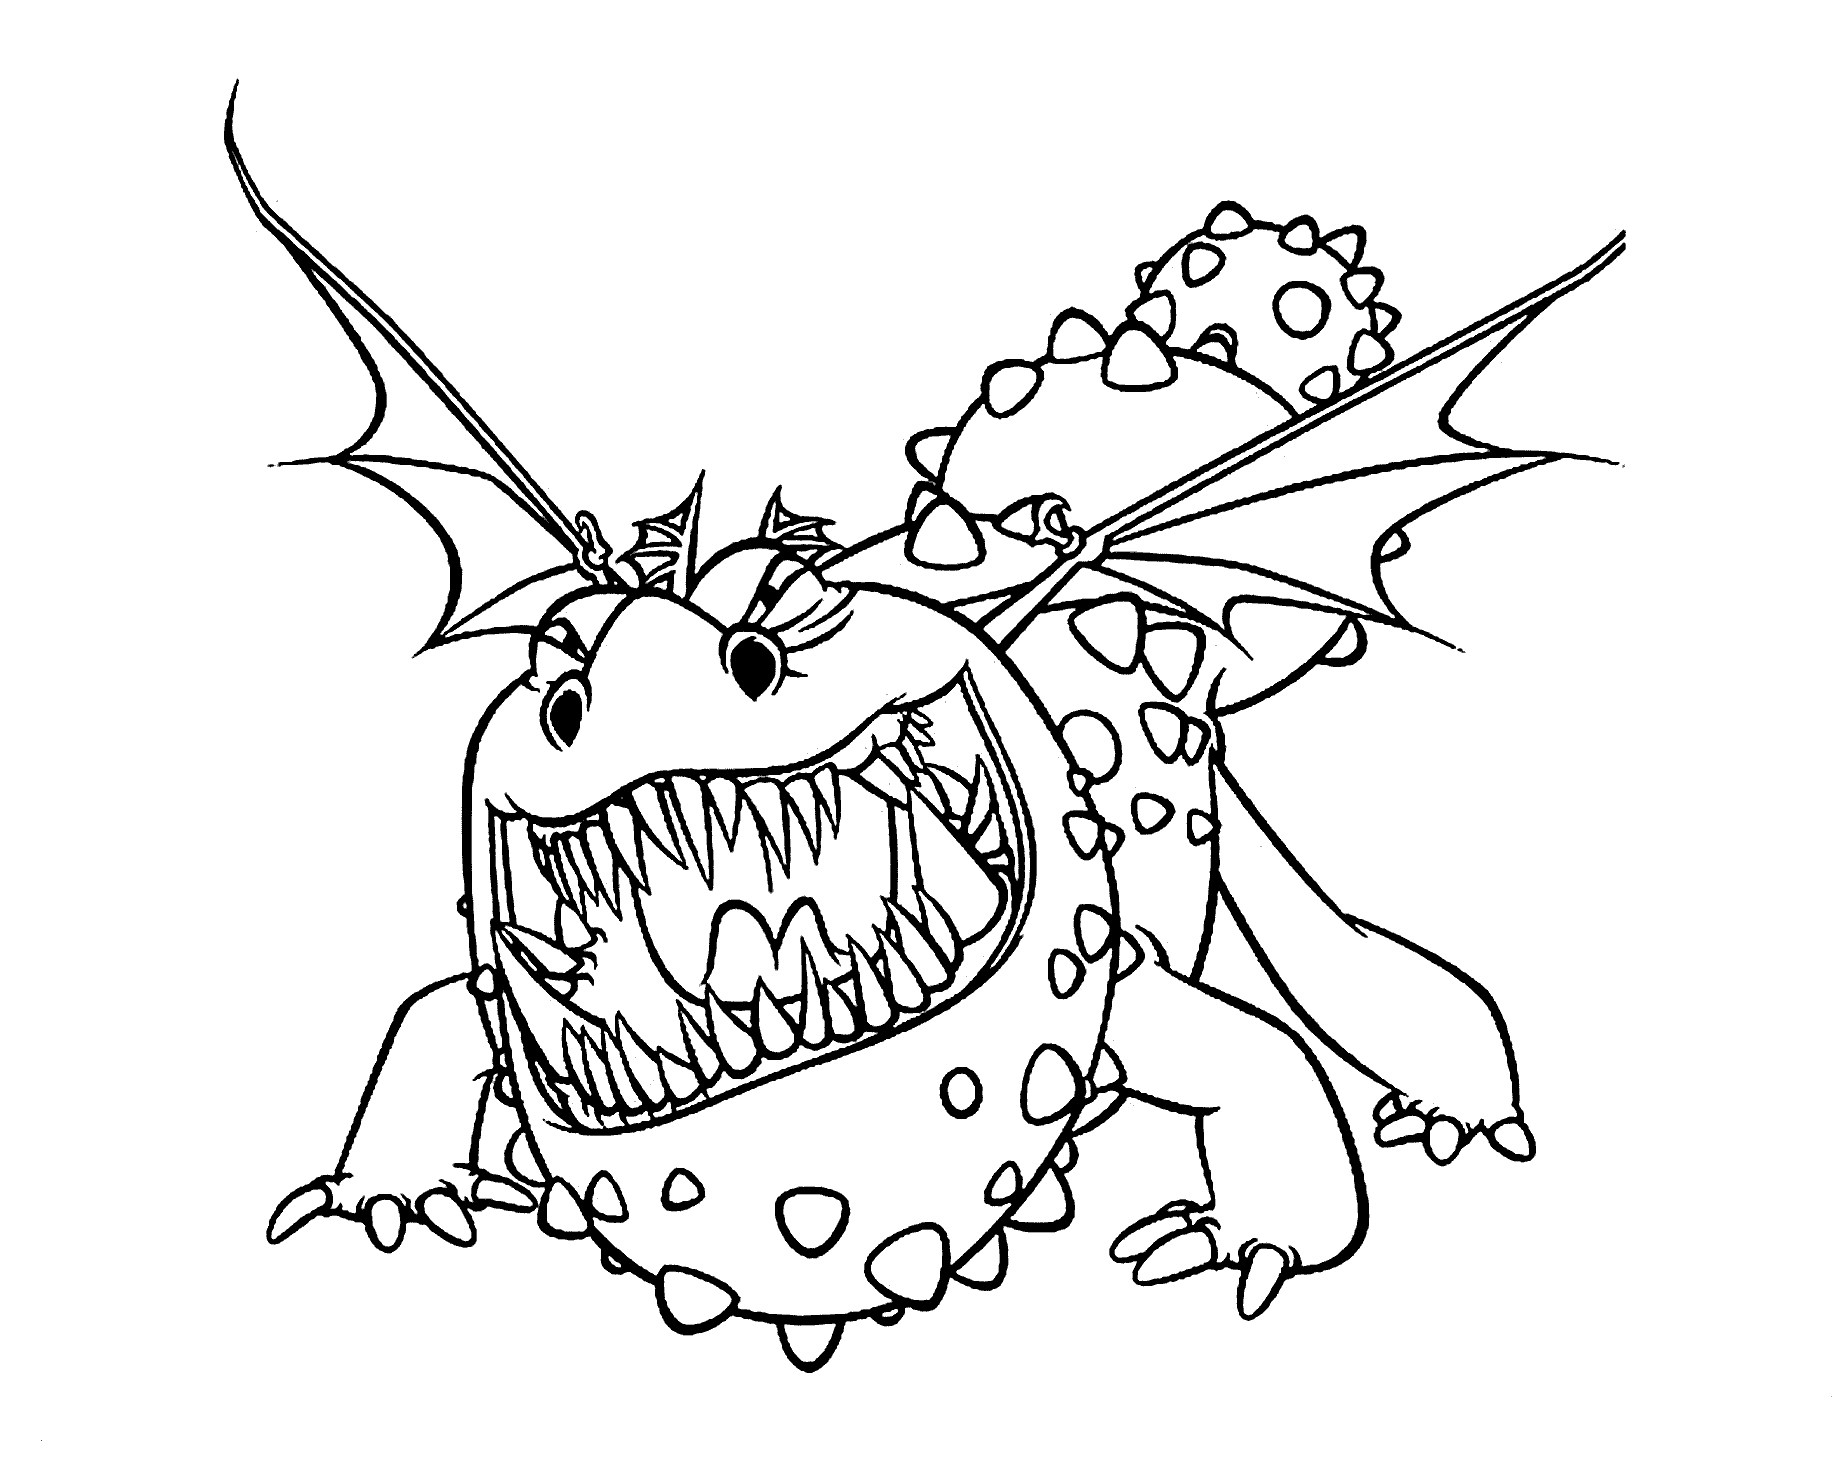 train coloring pages for toddlers Download-How to Train Your Dragon Coloring Pages for Kids Printable Free Best Ohnezahn Und Hicks 11-j